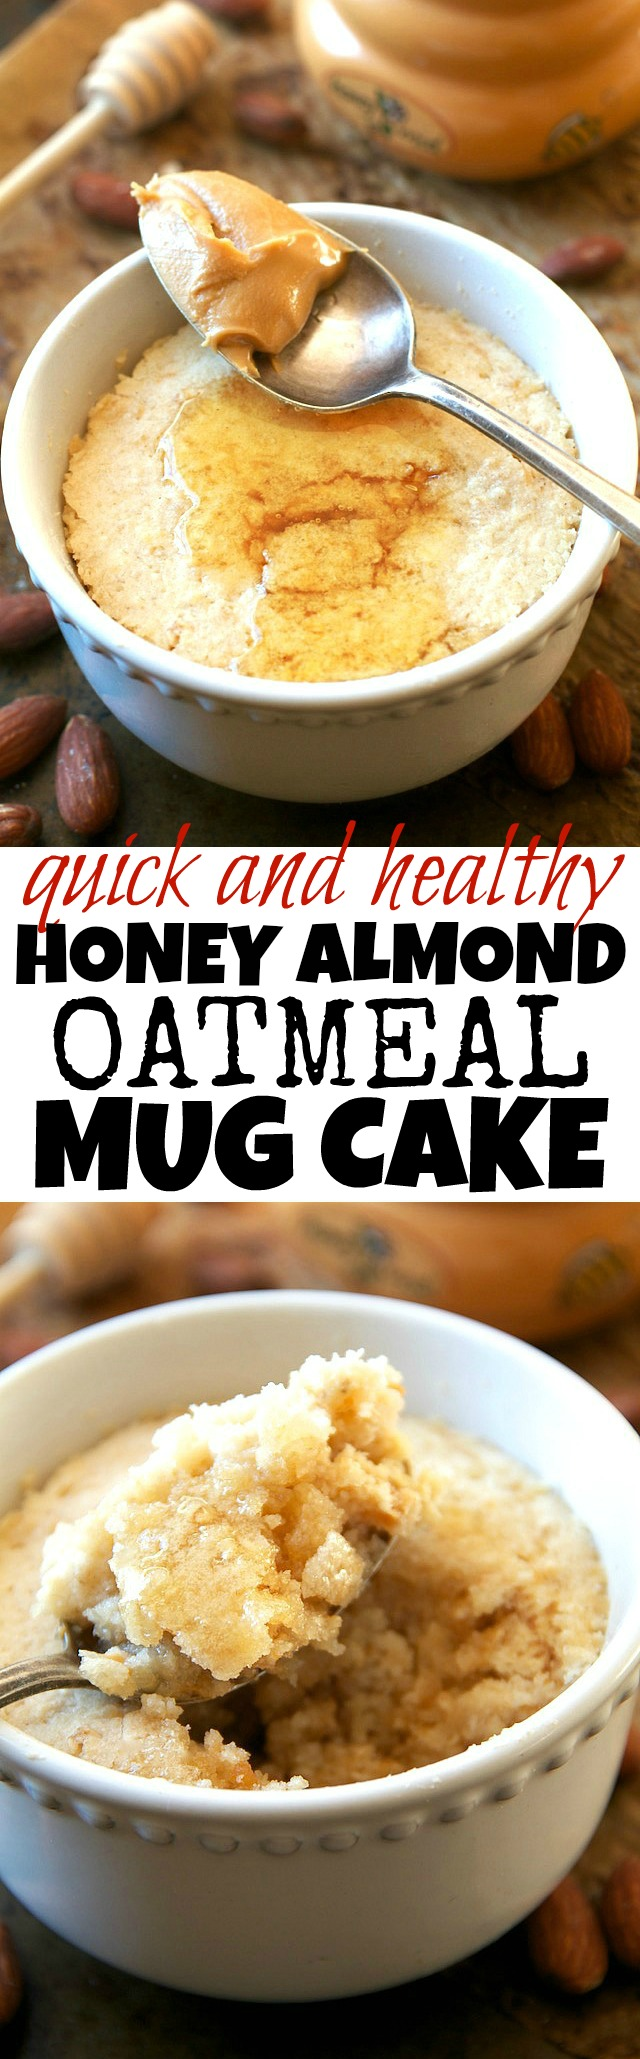 Honey Almond Oatmeal Mug Cake | running with spoons